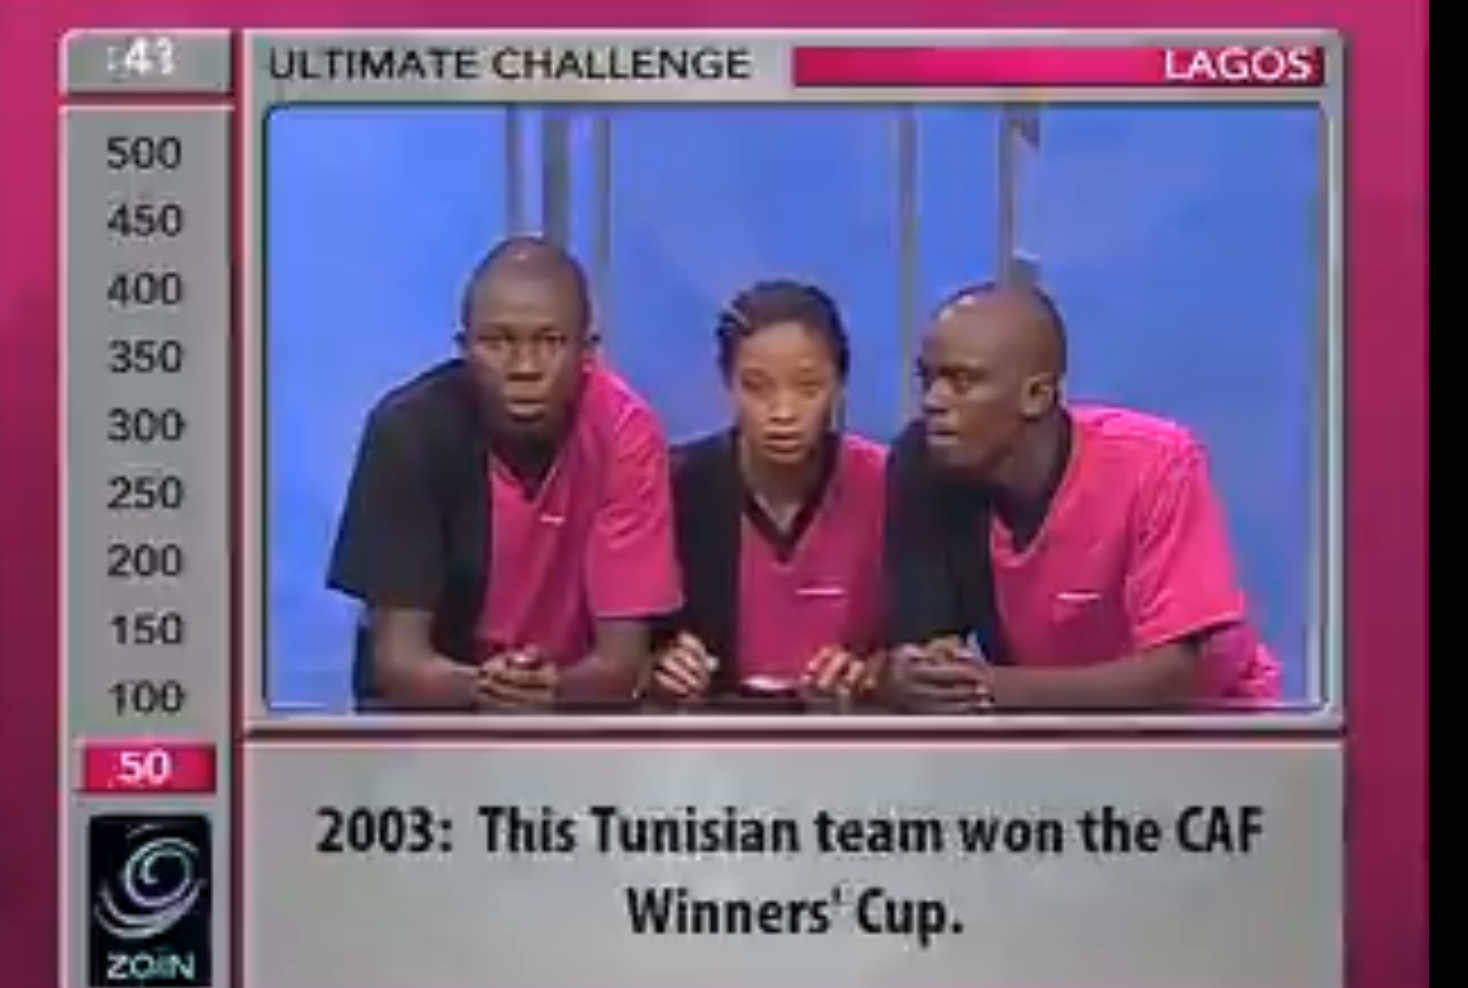 Before the CAF cup was changed to the CAF confederation cup, which Tunisian team won it?